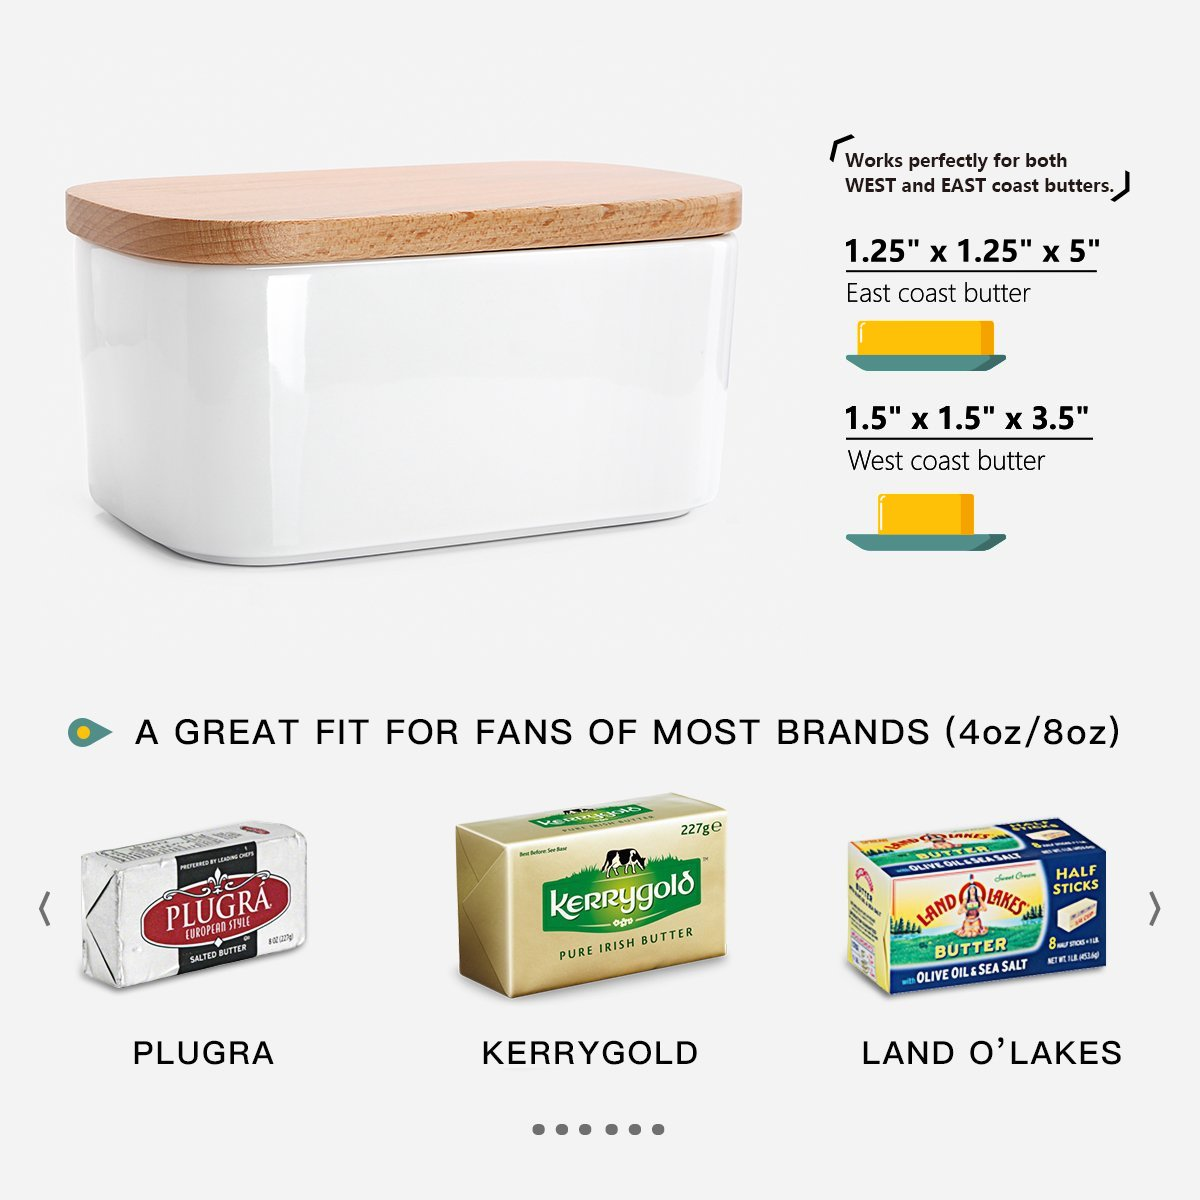 [NEW AND IMPROVED] Sweese 3151 Large Butter Dish - Airtight Butter Keeper Holds Up to 2 Sticks of butter - Porcelain Container with Beech by Sweese (Image #7)